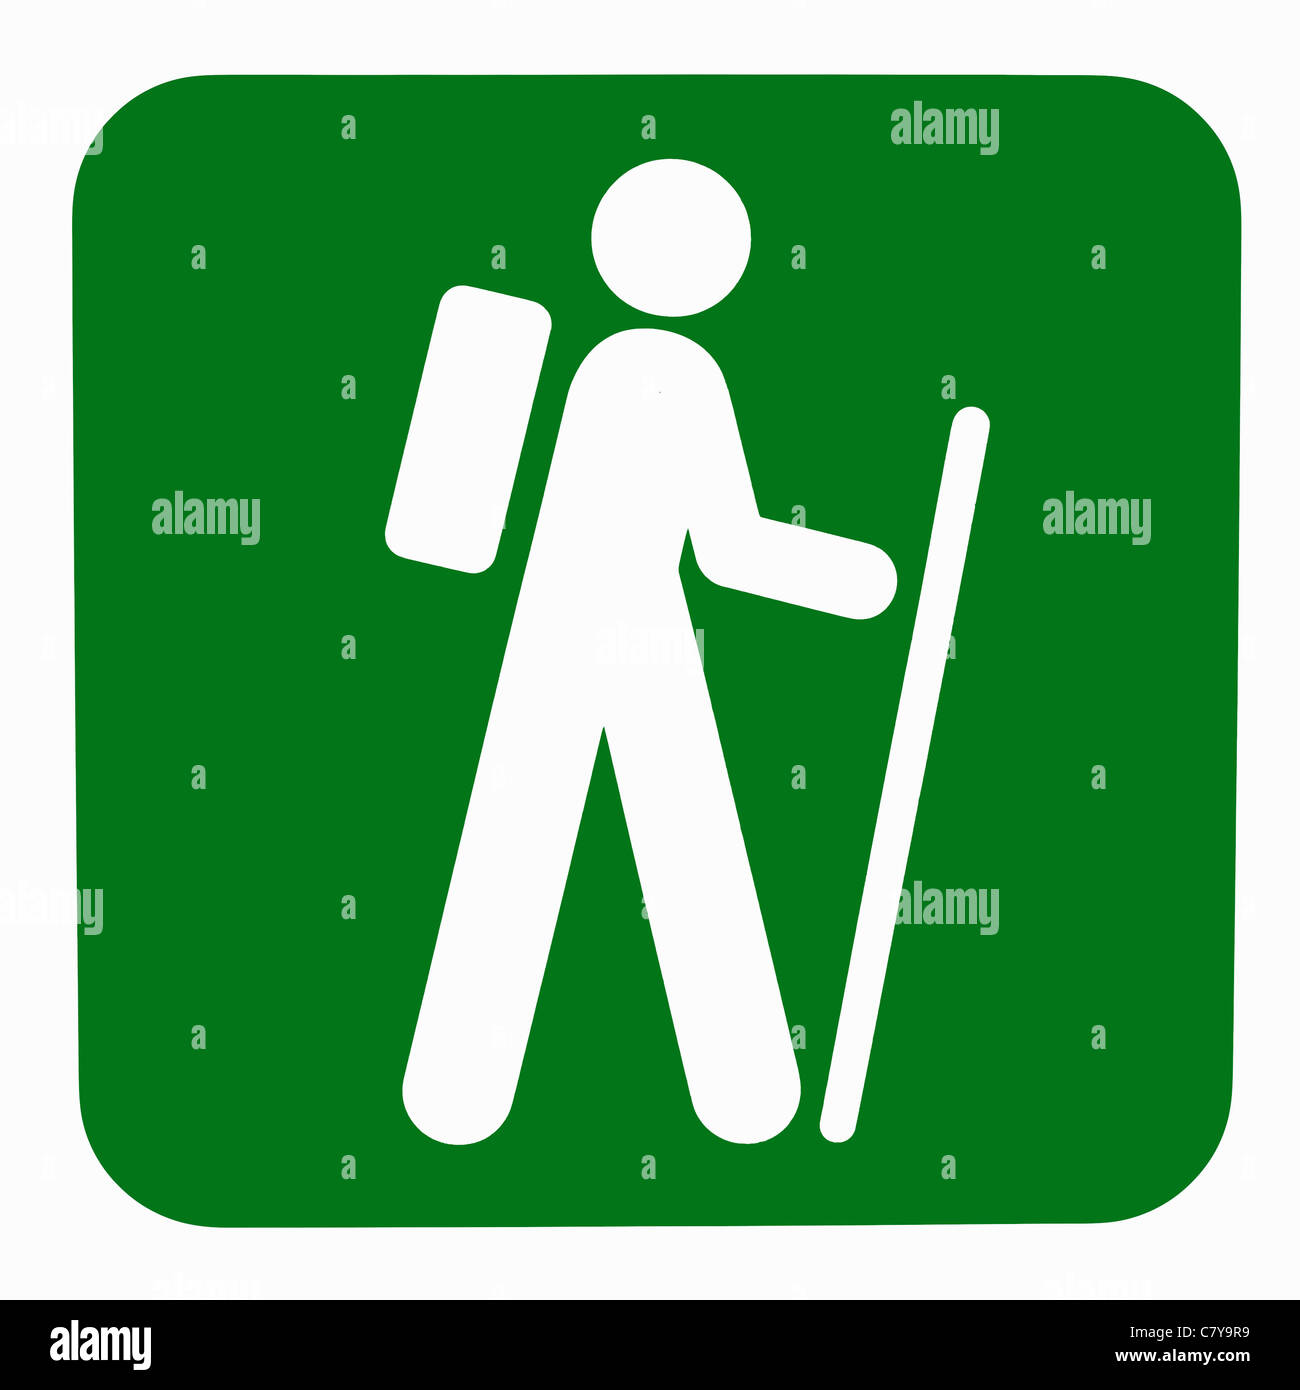 Green nature walk sign with white person figure holding a cane and wearing a backpack Stock Photo